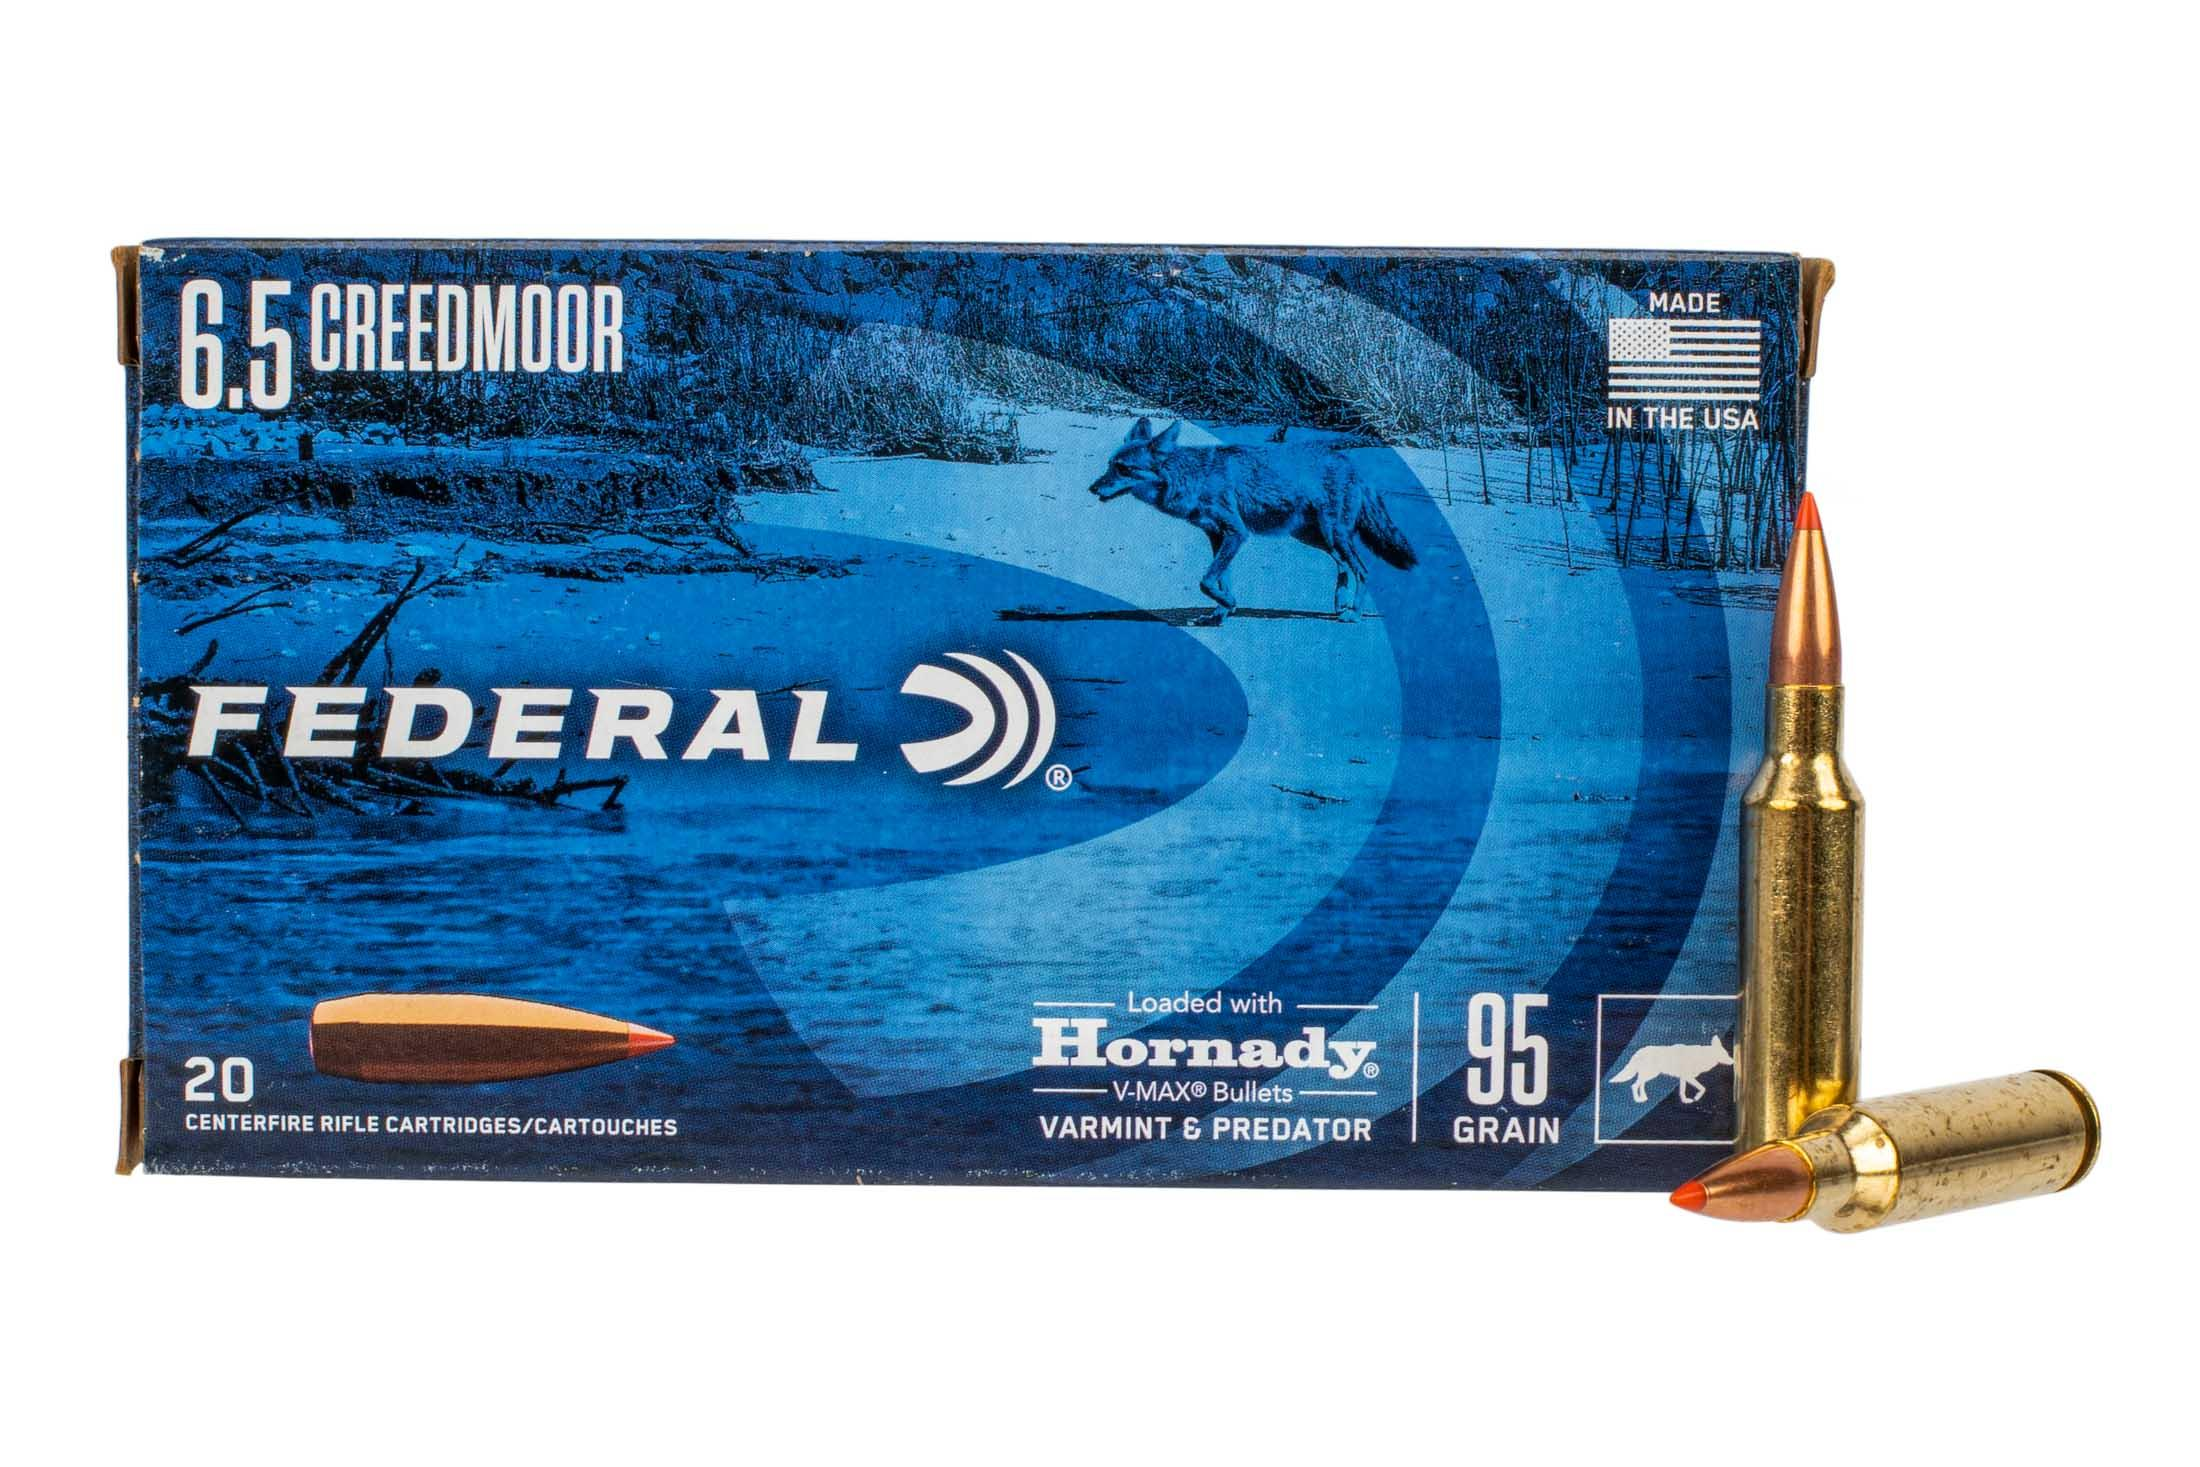 Federal Varmint & Predator 6.5 Creedmoor 95-grain V-MAX ammo is available in 20 round boxes.